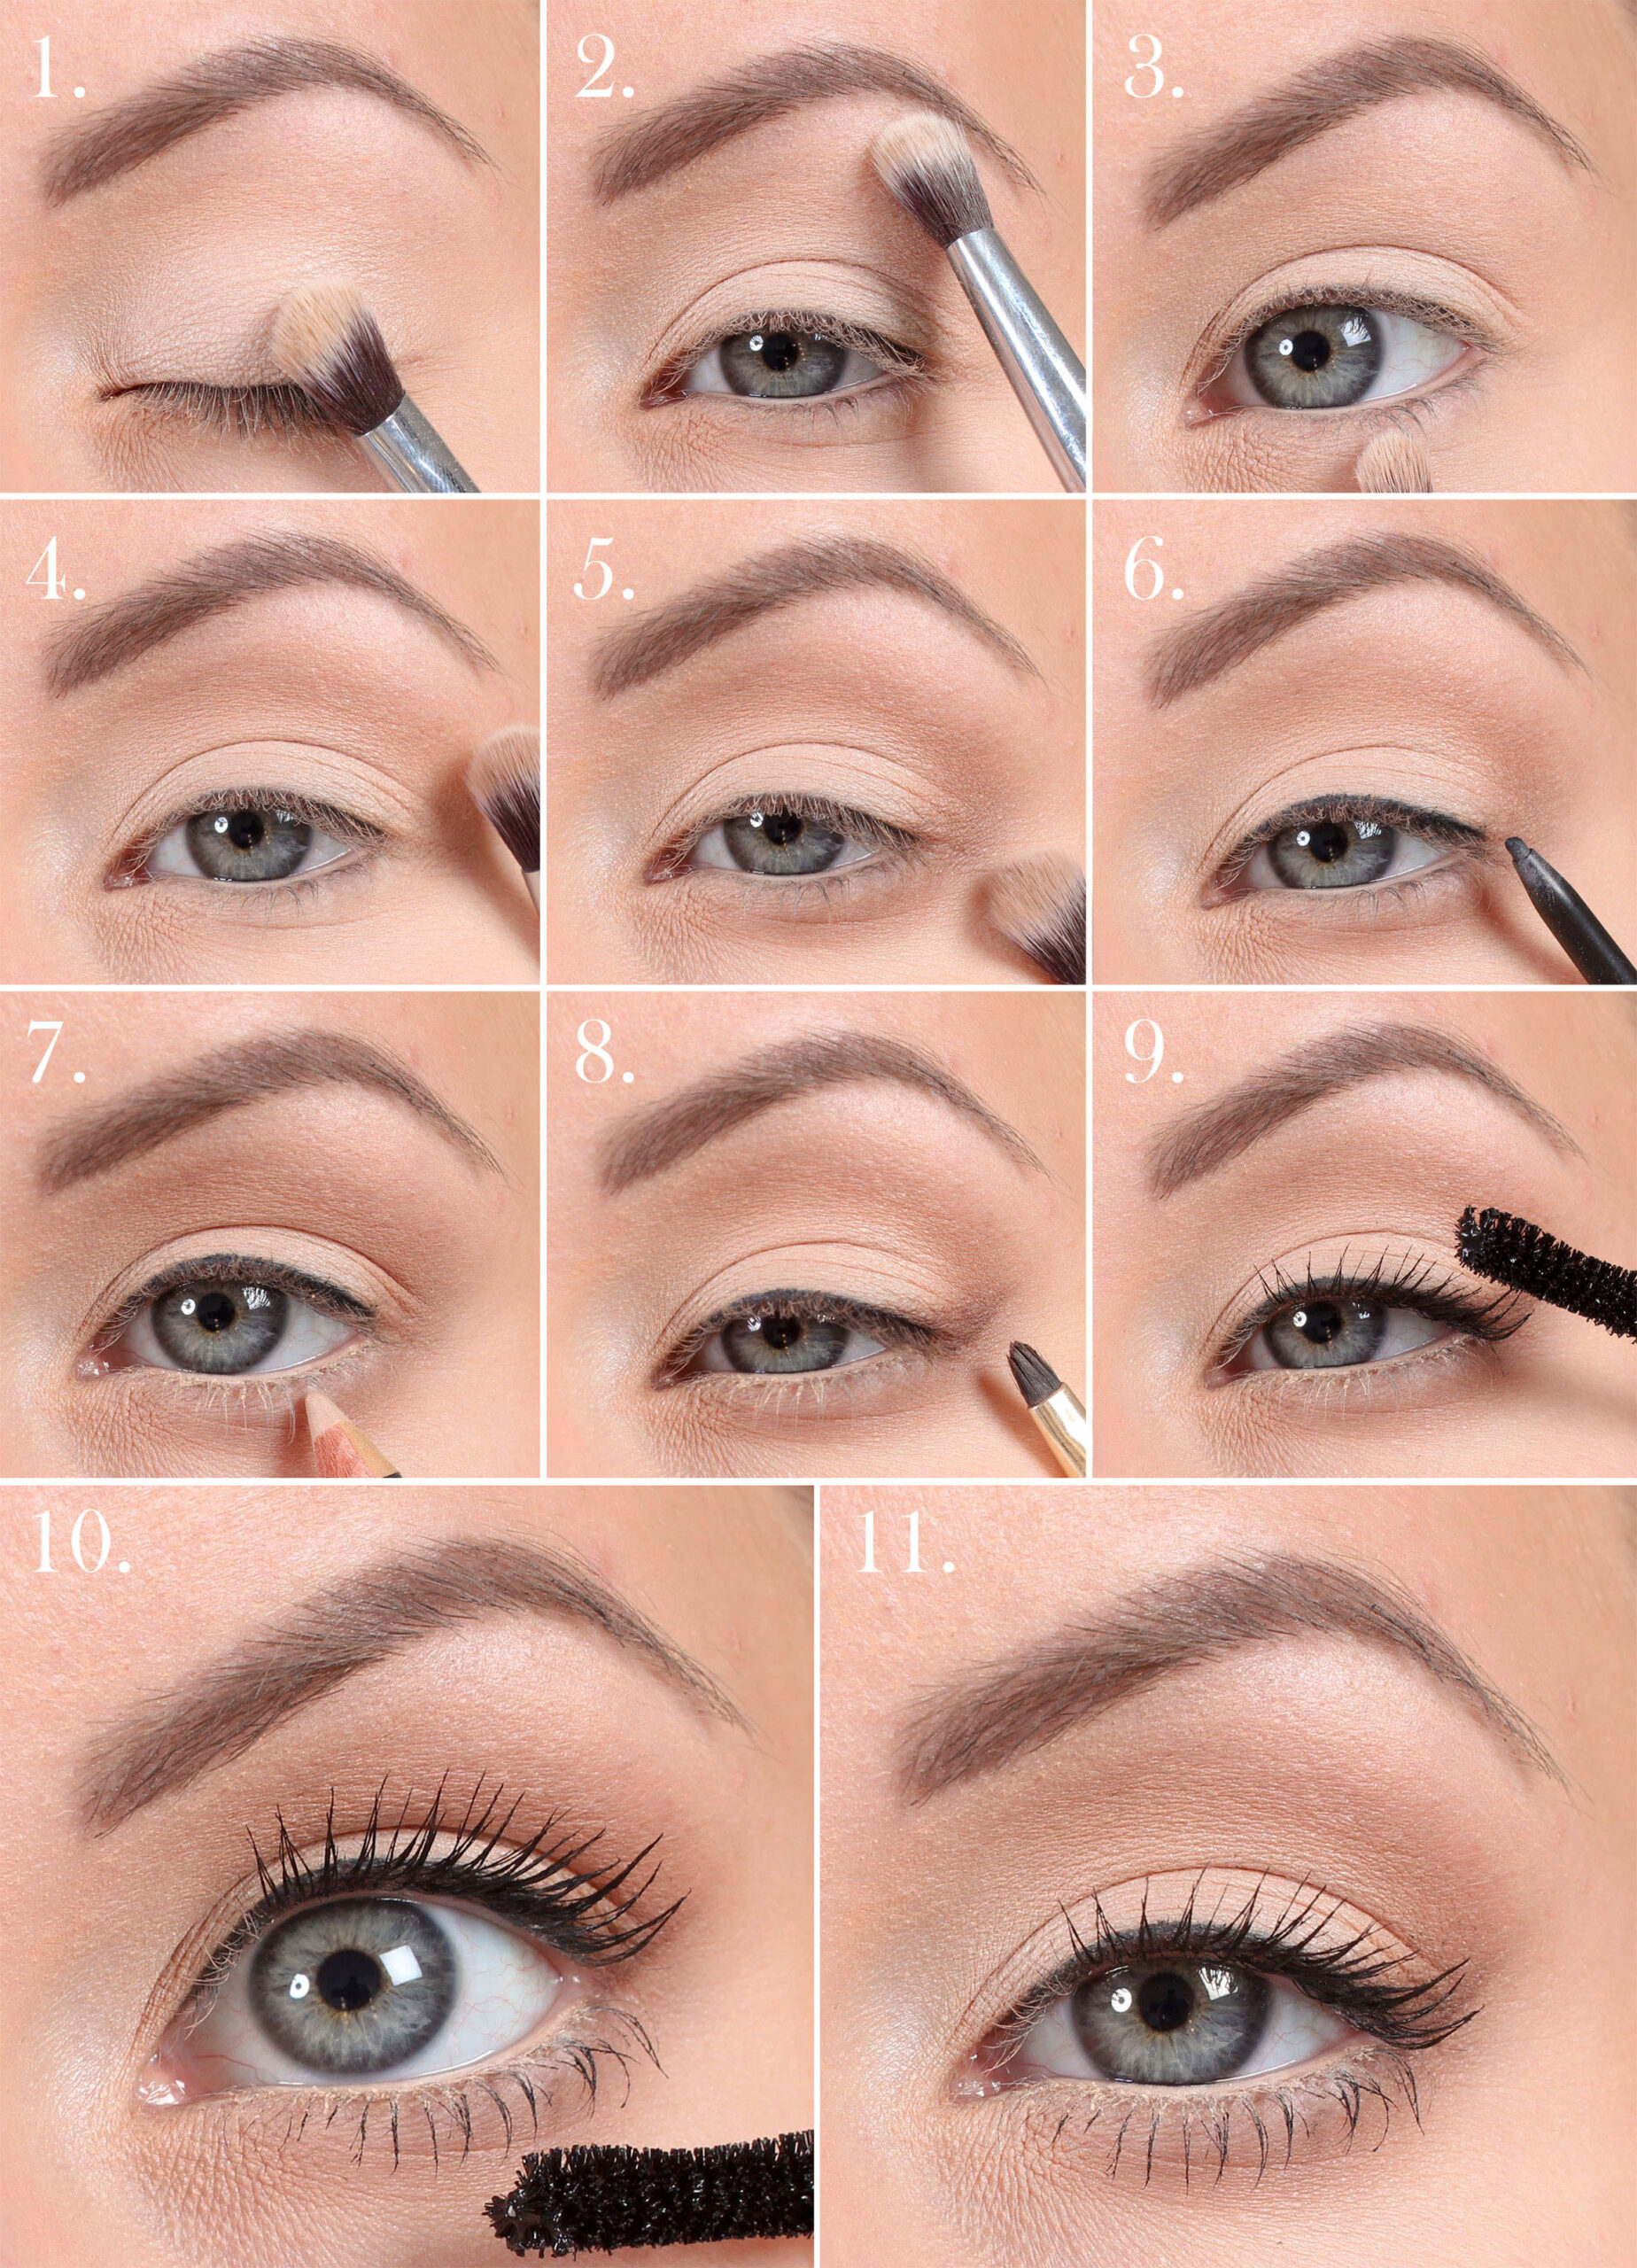 Make up the eyes bigger - Step by step